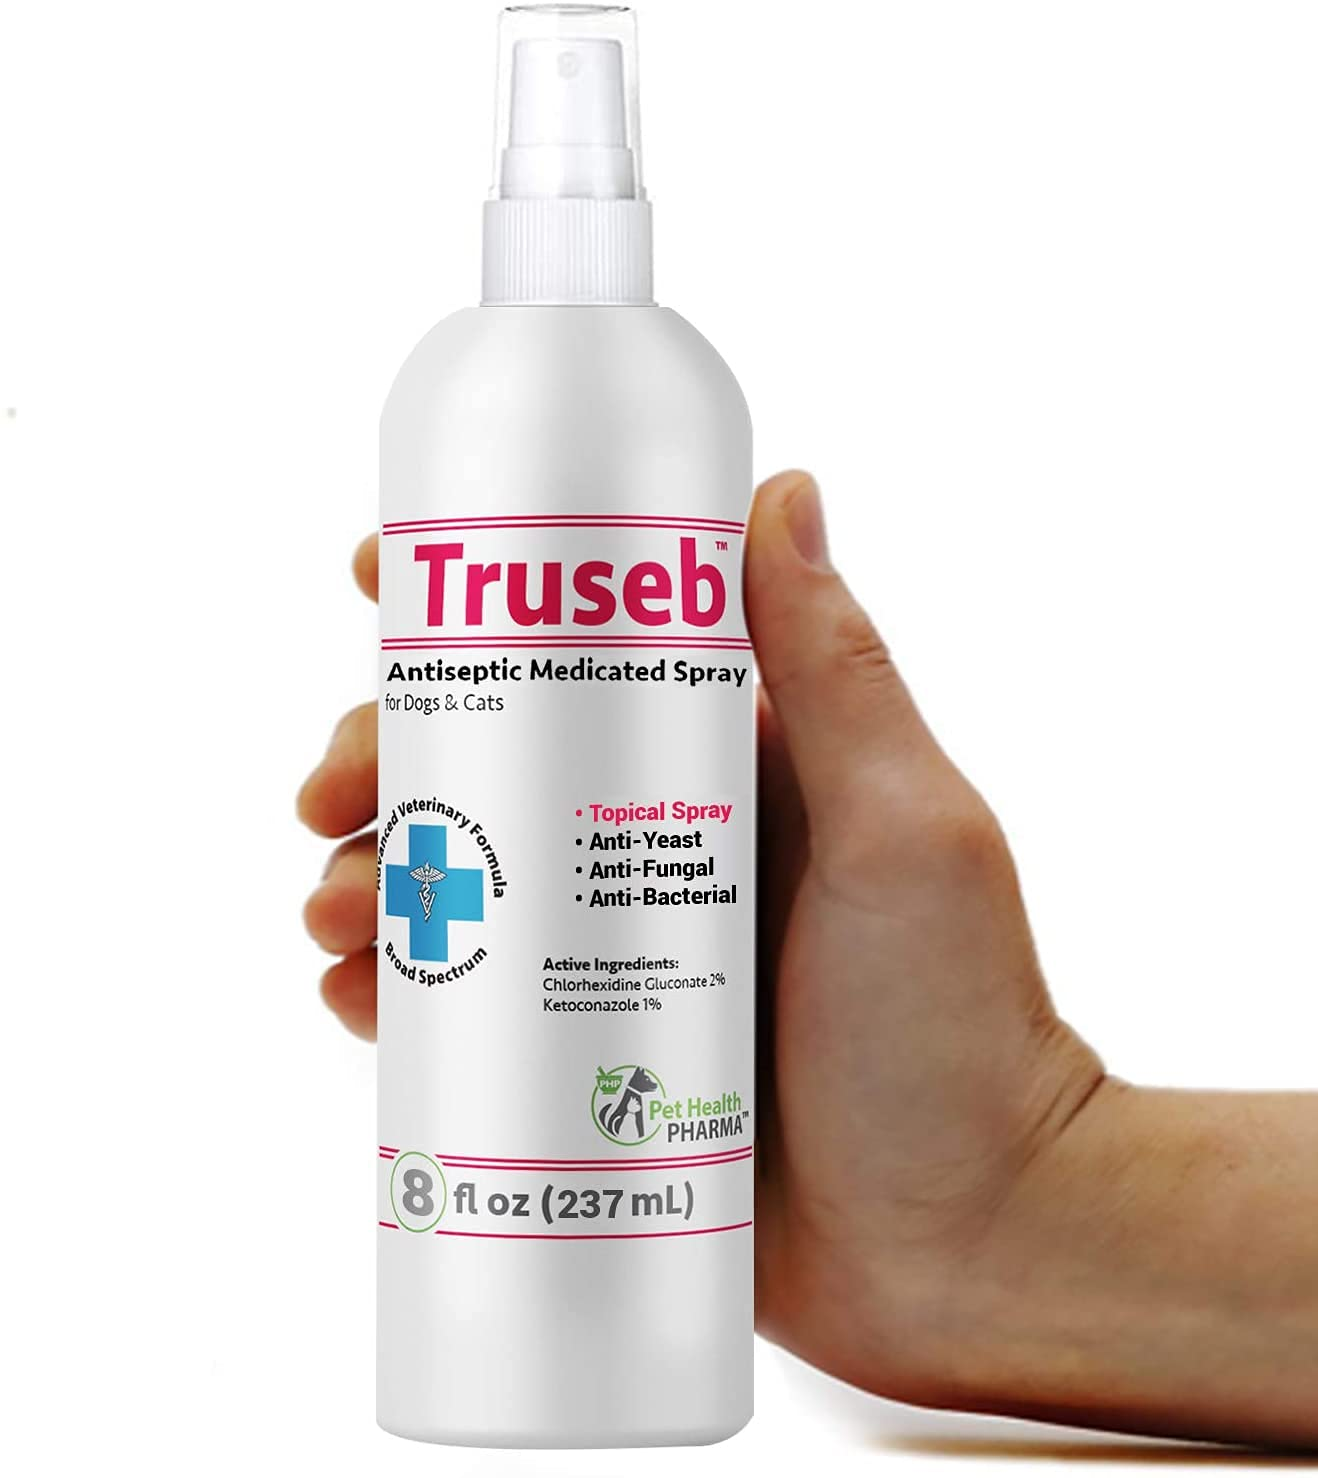 Truseb | Chlorhexidine Spray for Dogs & Cats - Ketoconazole with Aloe & Vitamin E, Hot Spot Treatment, Itch Relief, Dry Skin, Allergy Relief, Rashes